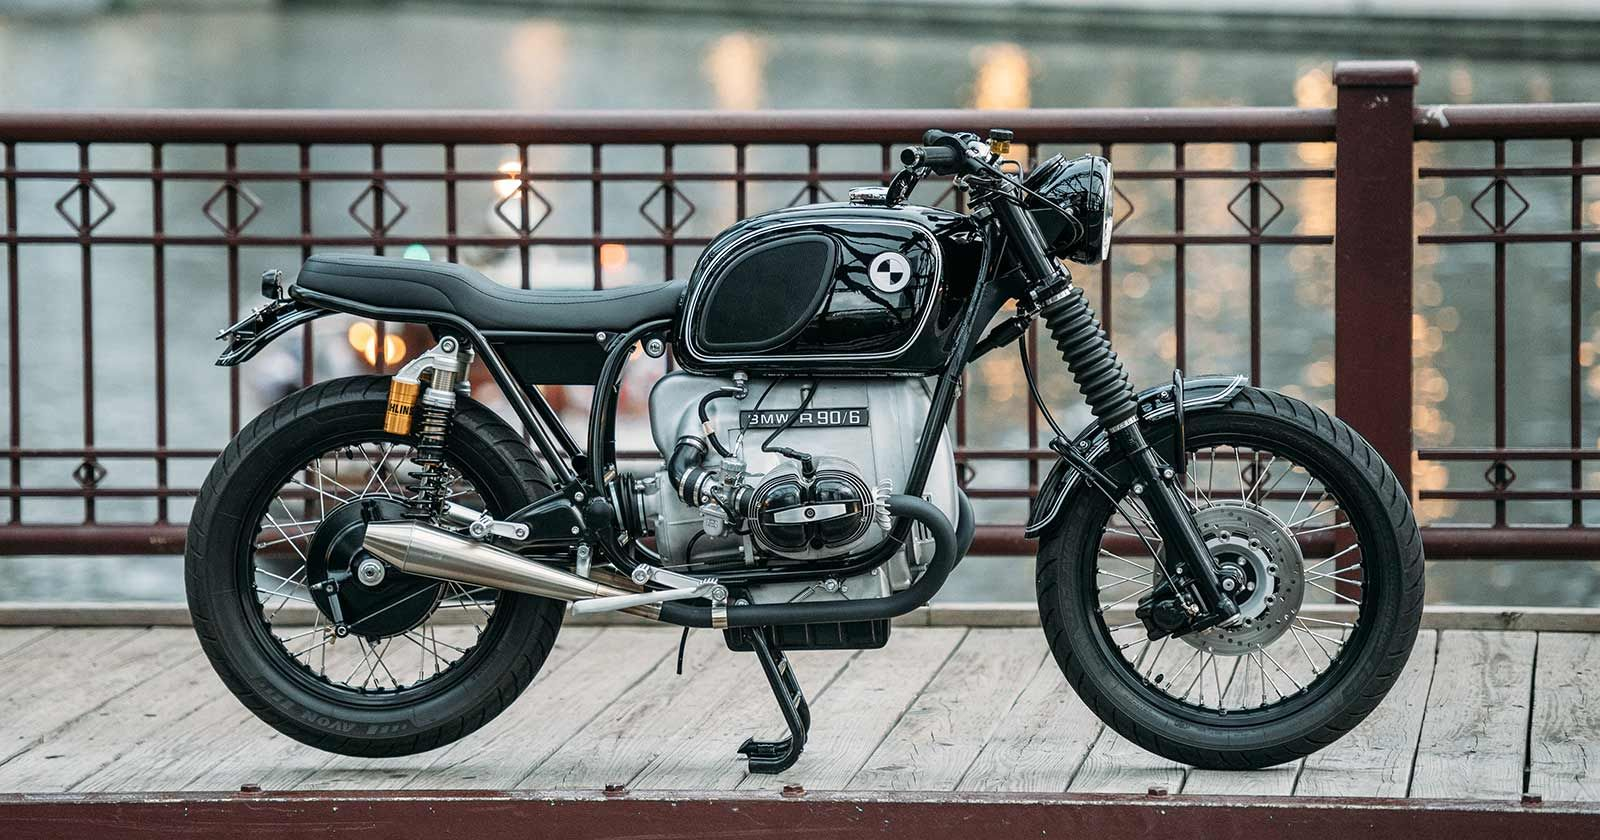 A 21st Century Update For The Classic Bmw R90 6 Custom Bikes